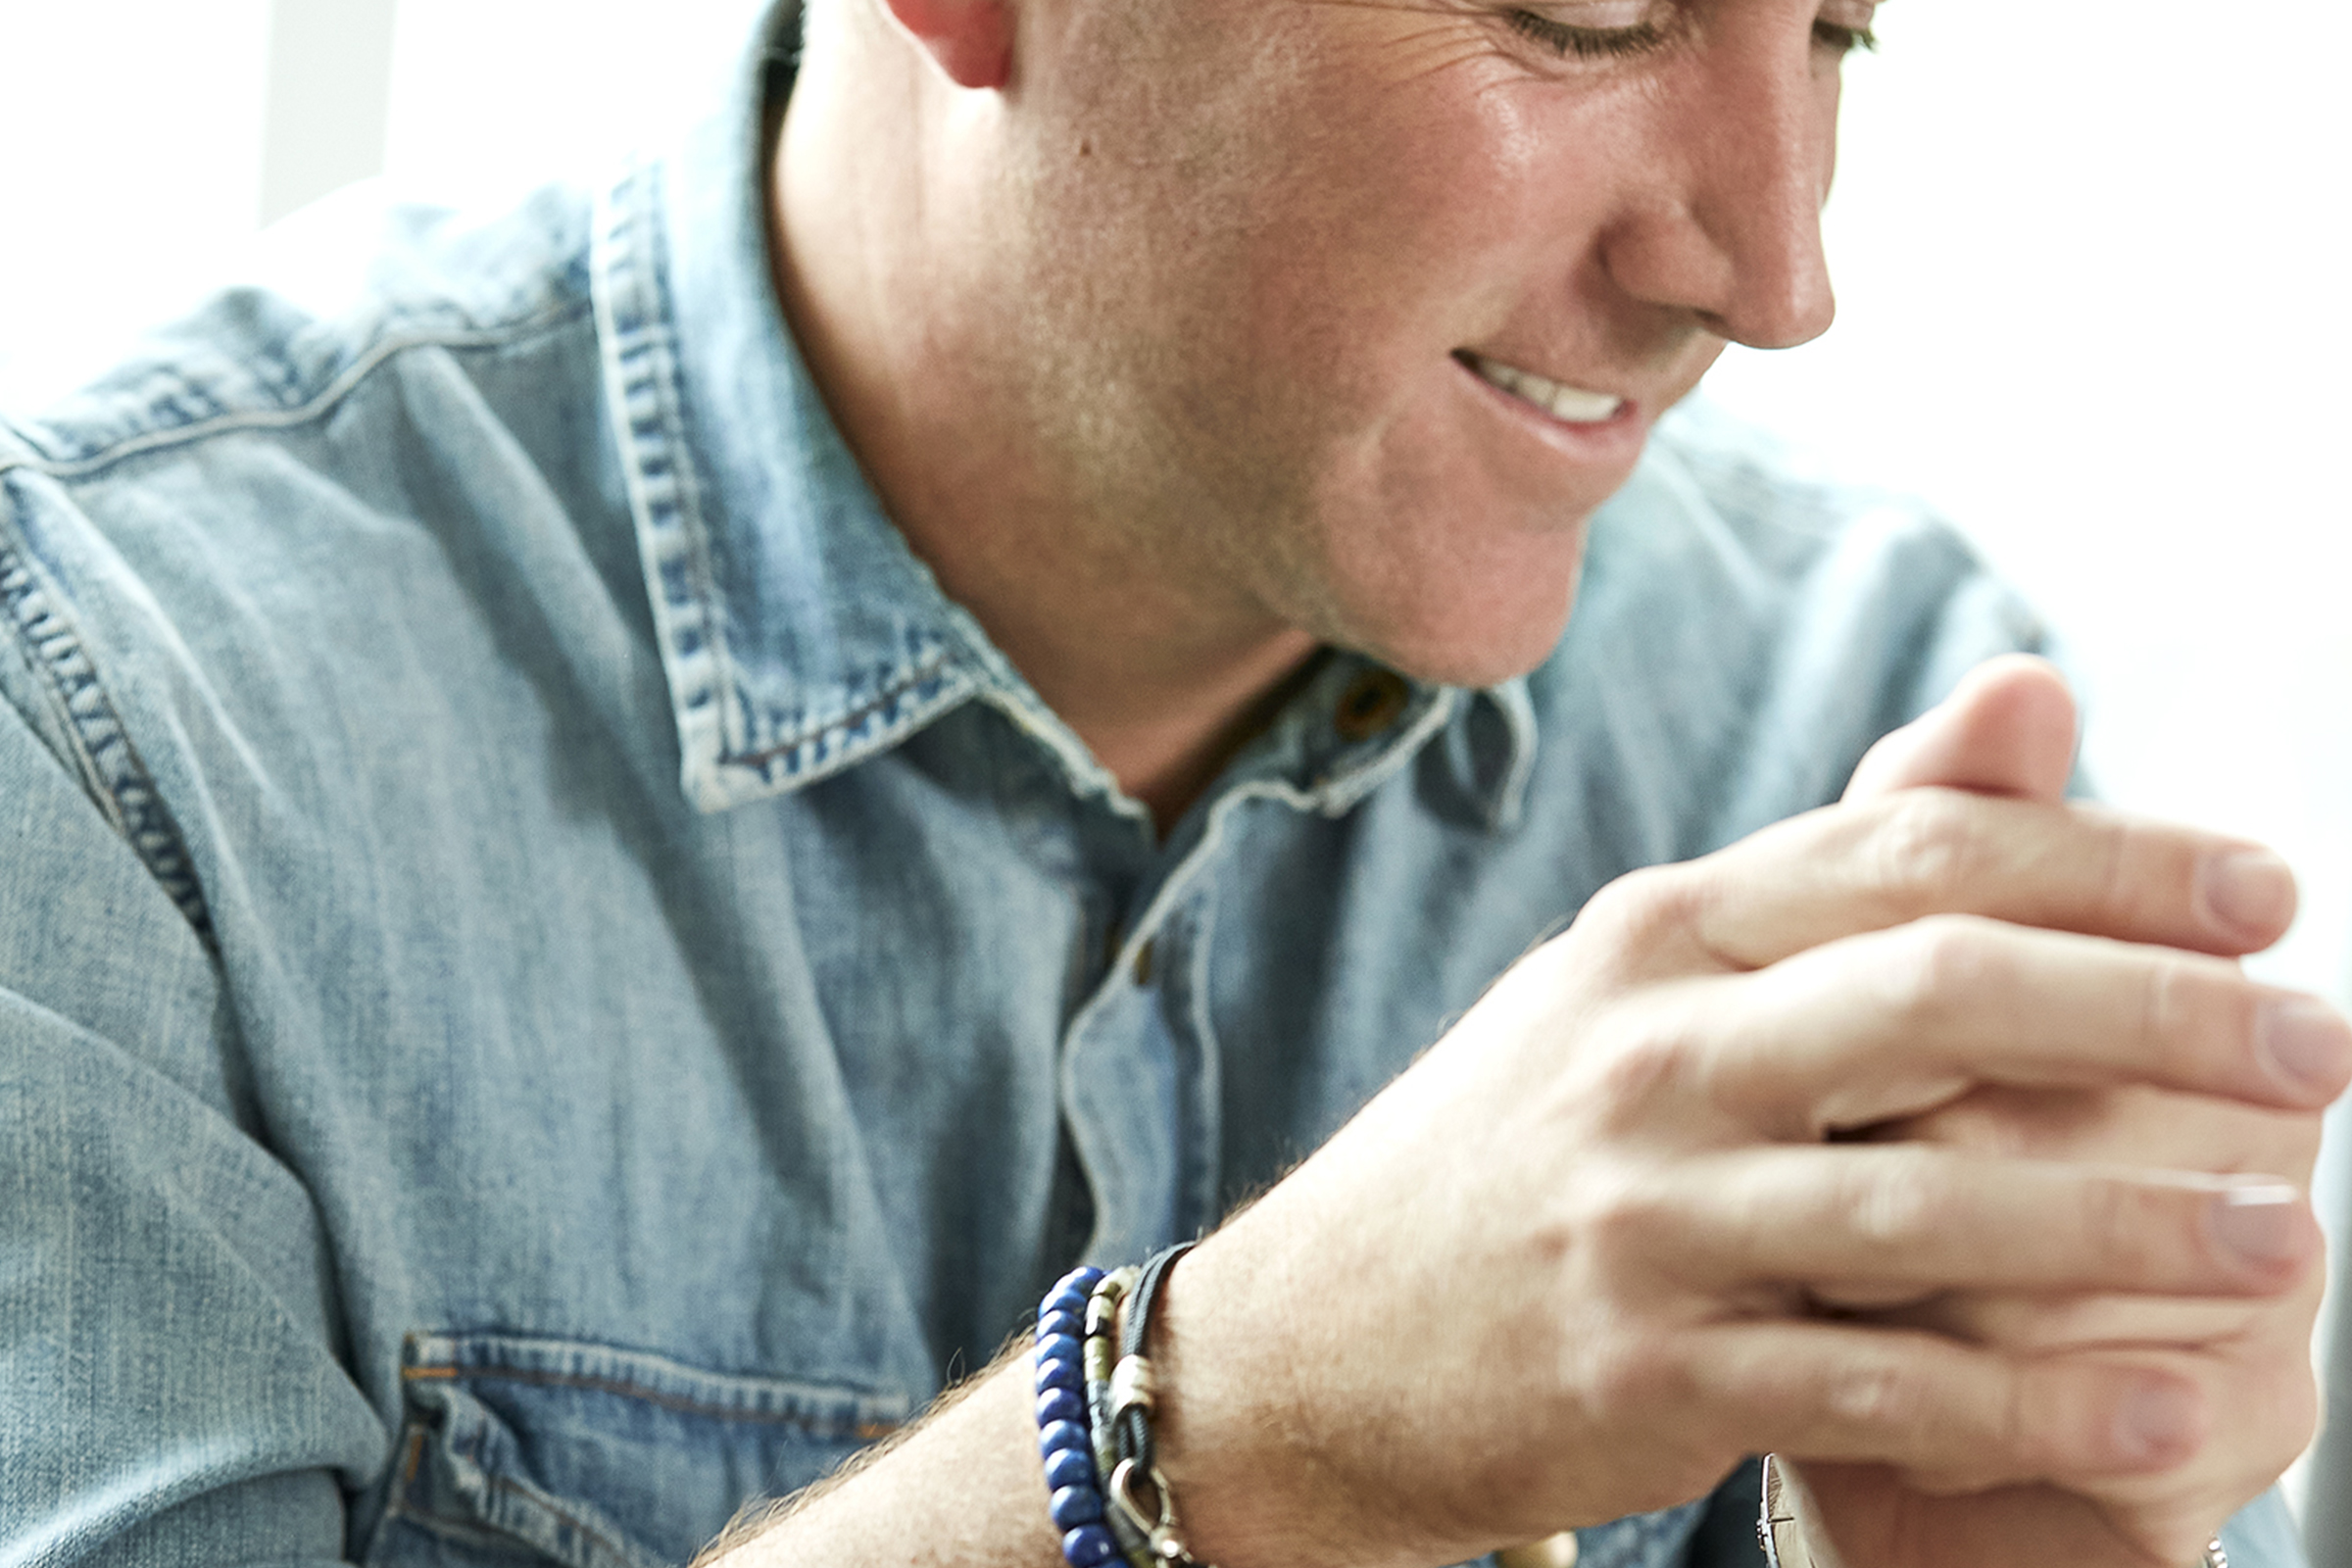 Kendra Scott chief executive officer Tom Nolan wearing Scott Bros. by Kendra Scott in a brand campaign.